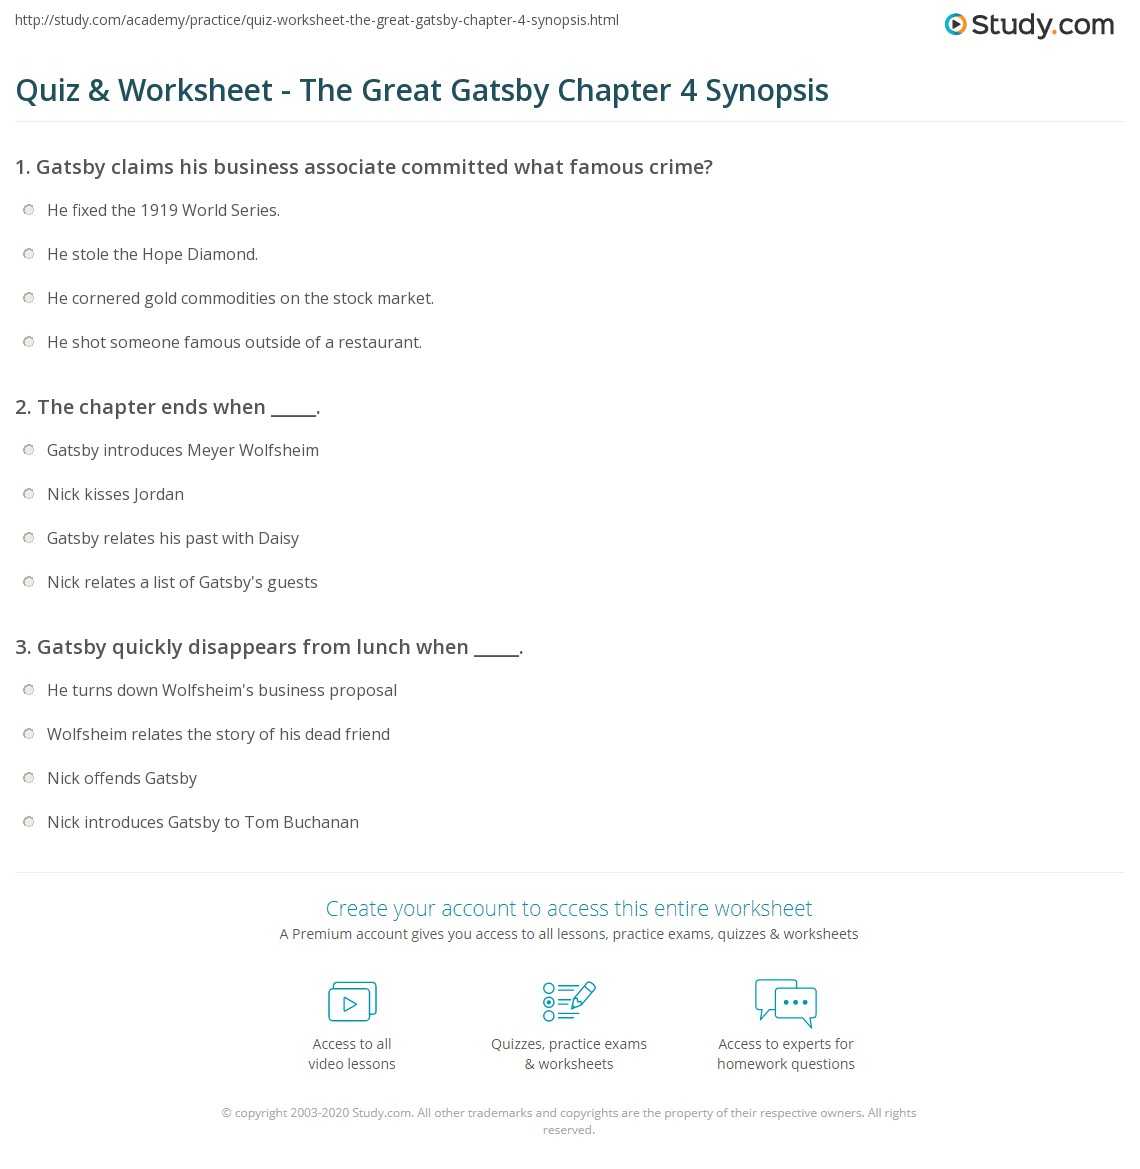 quiz worksheet the great gatsby chapter synopsis com print the great gatsby chapter 4 summary worksheet